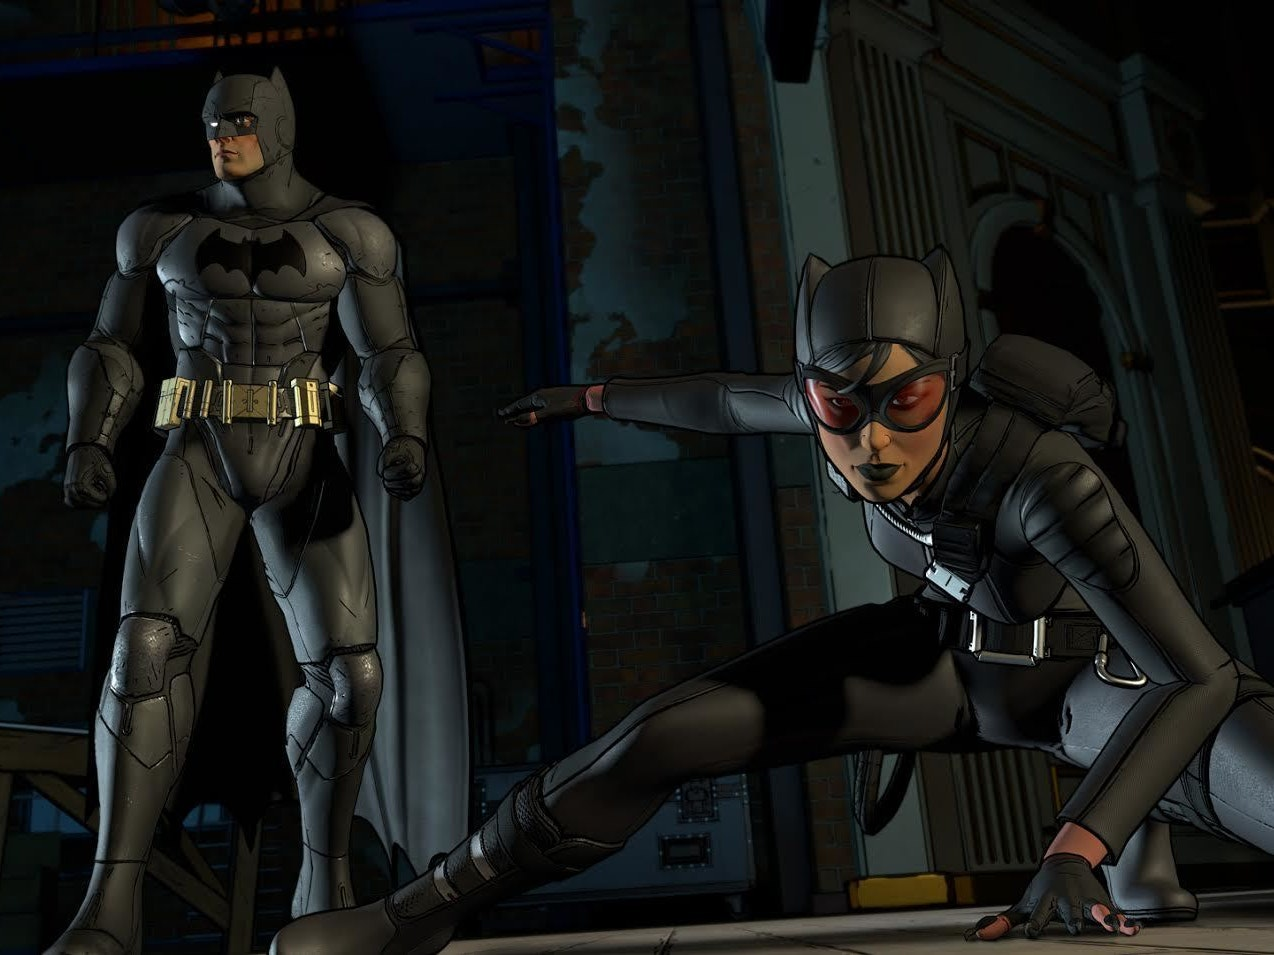 Telltale Batman Episode 3 Is Coming, Now With More Catwoman